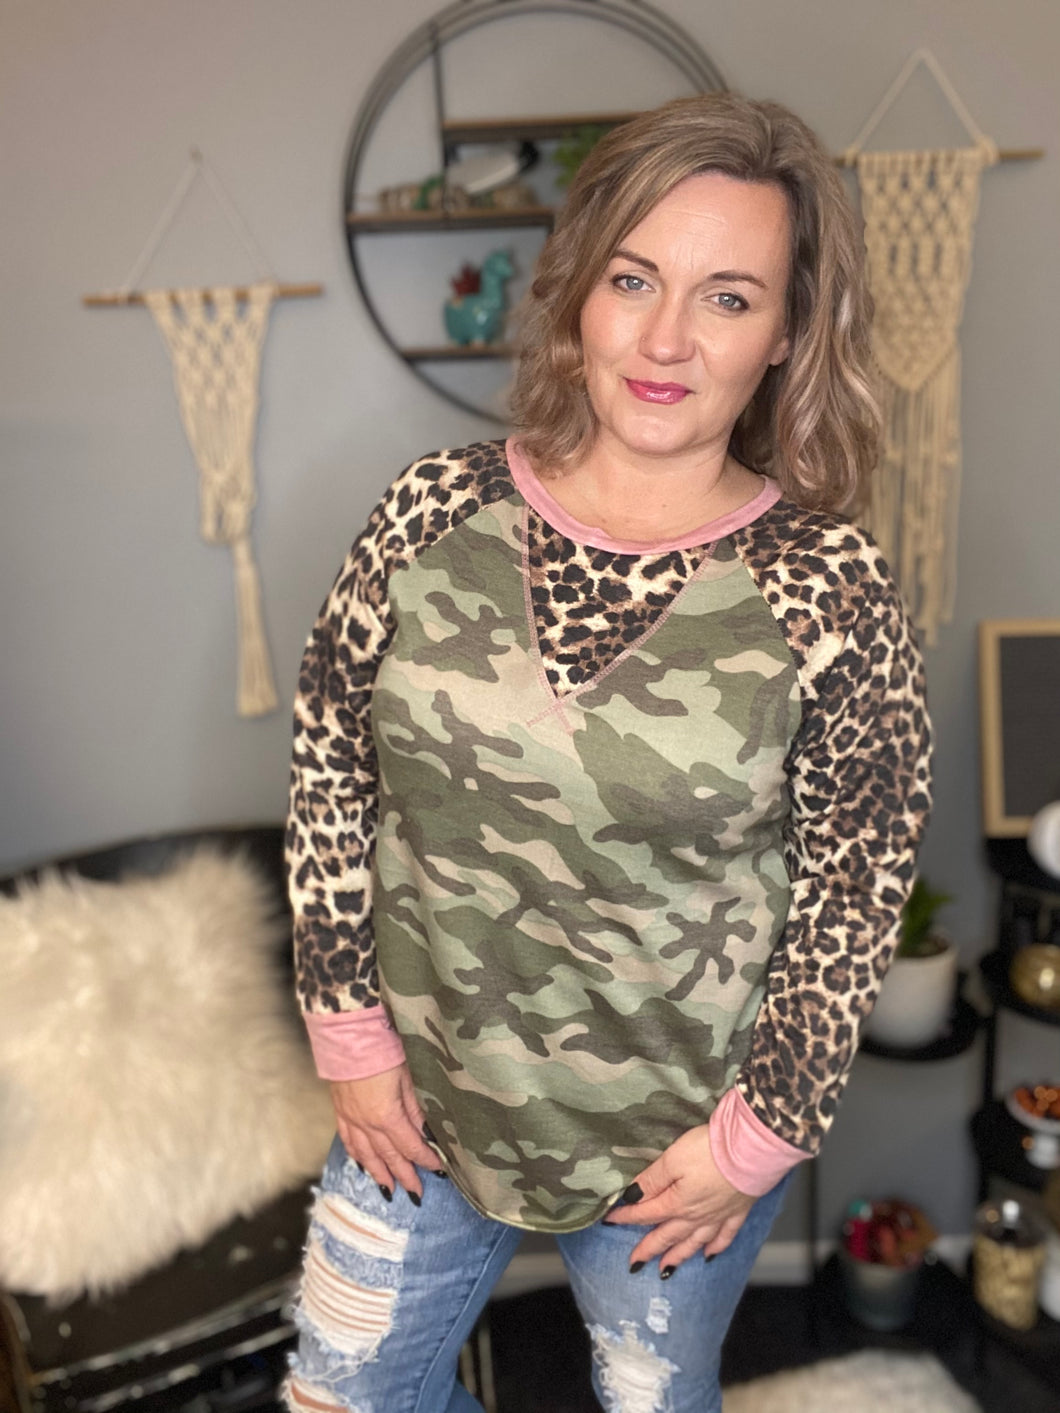 The Cammy camo top